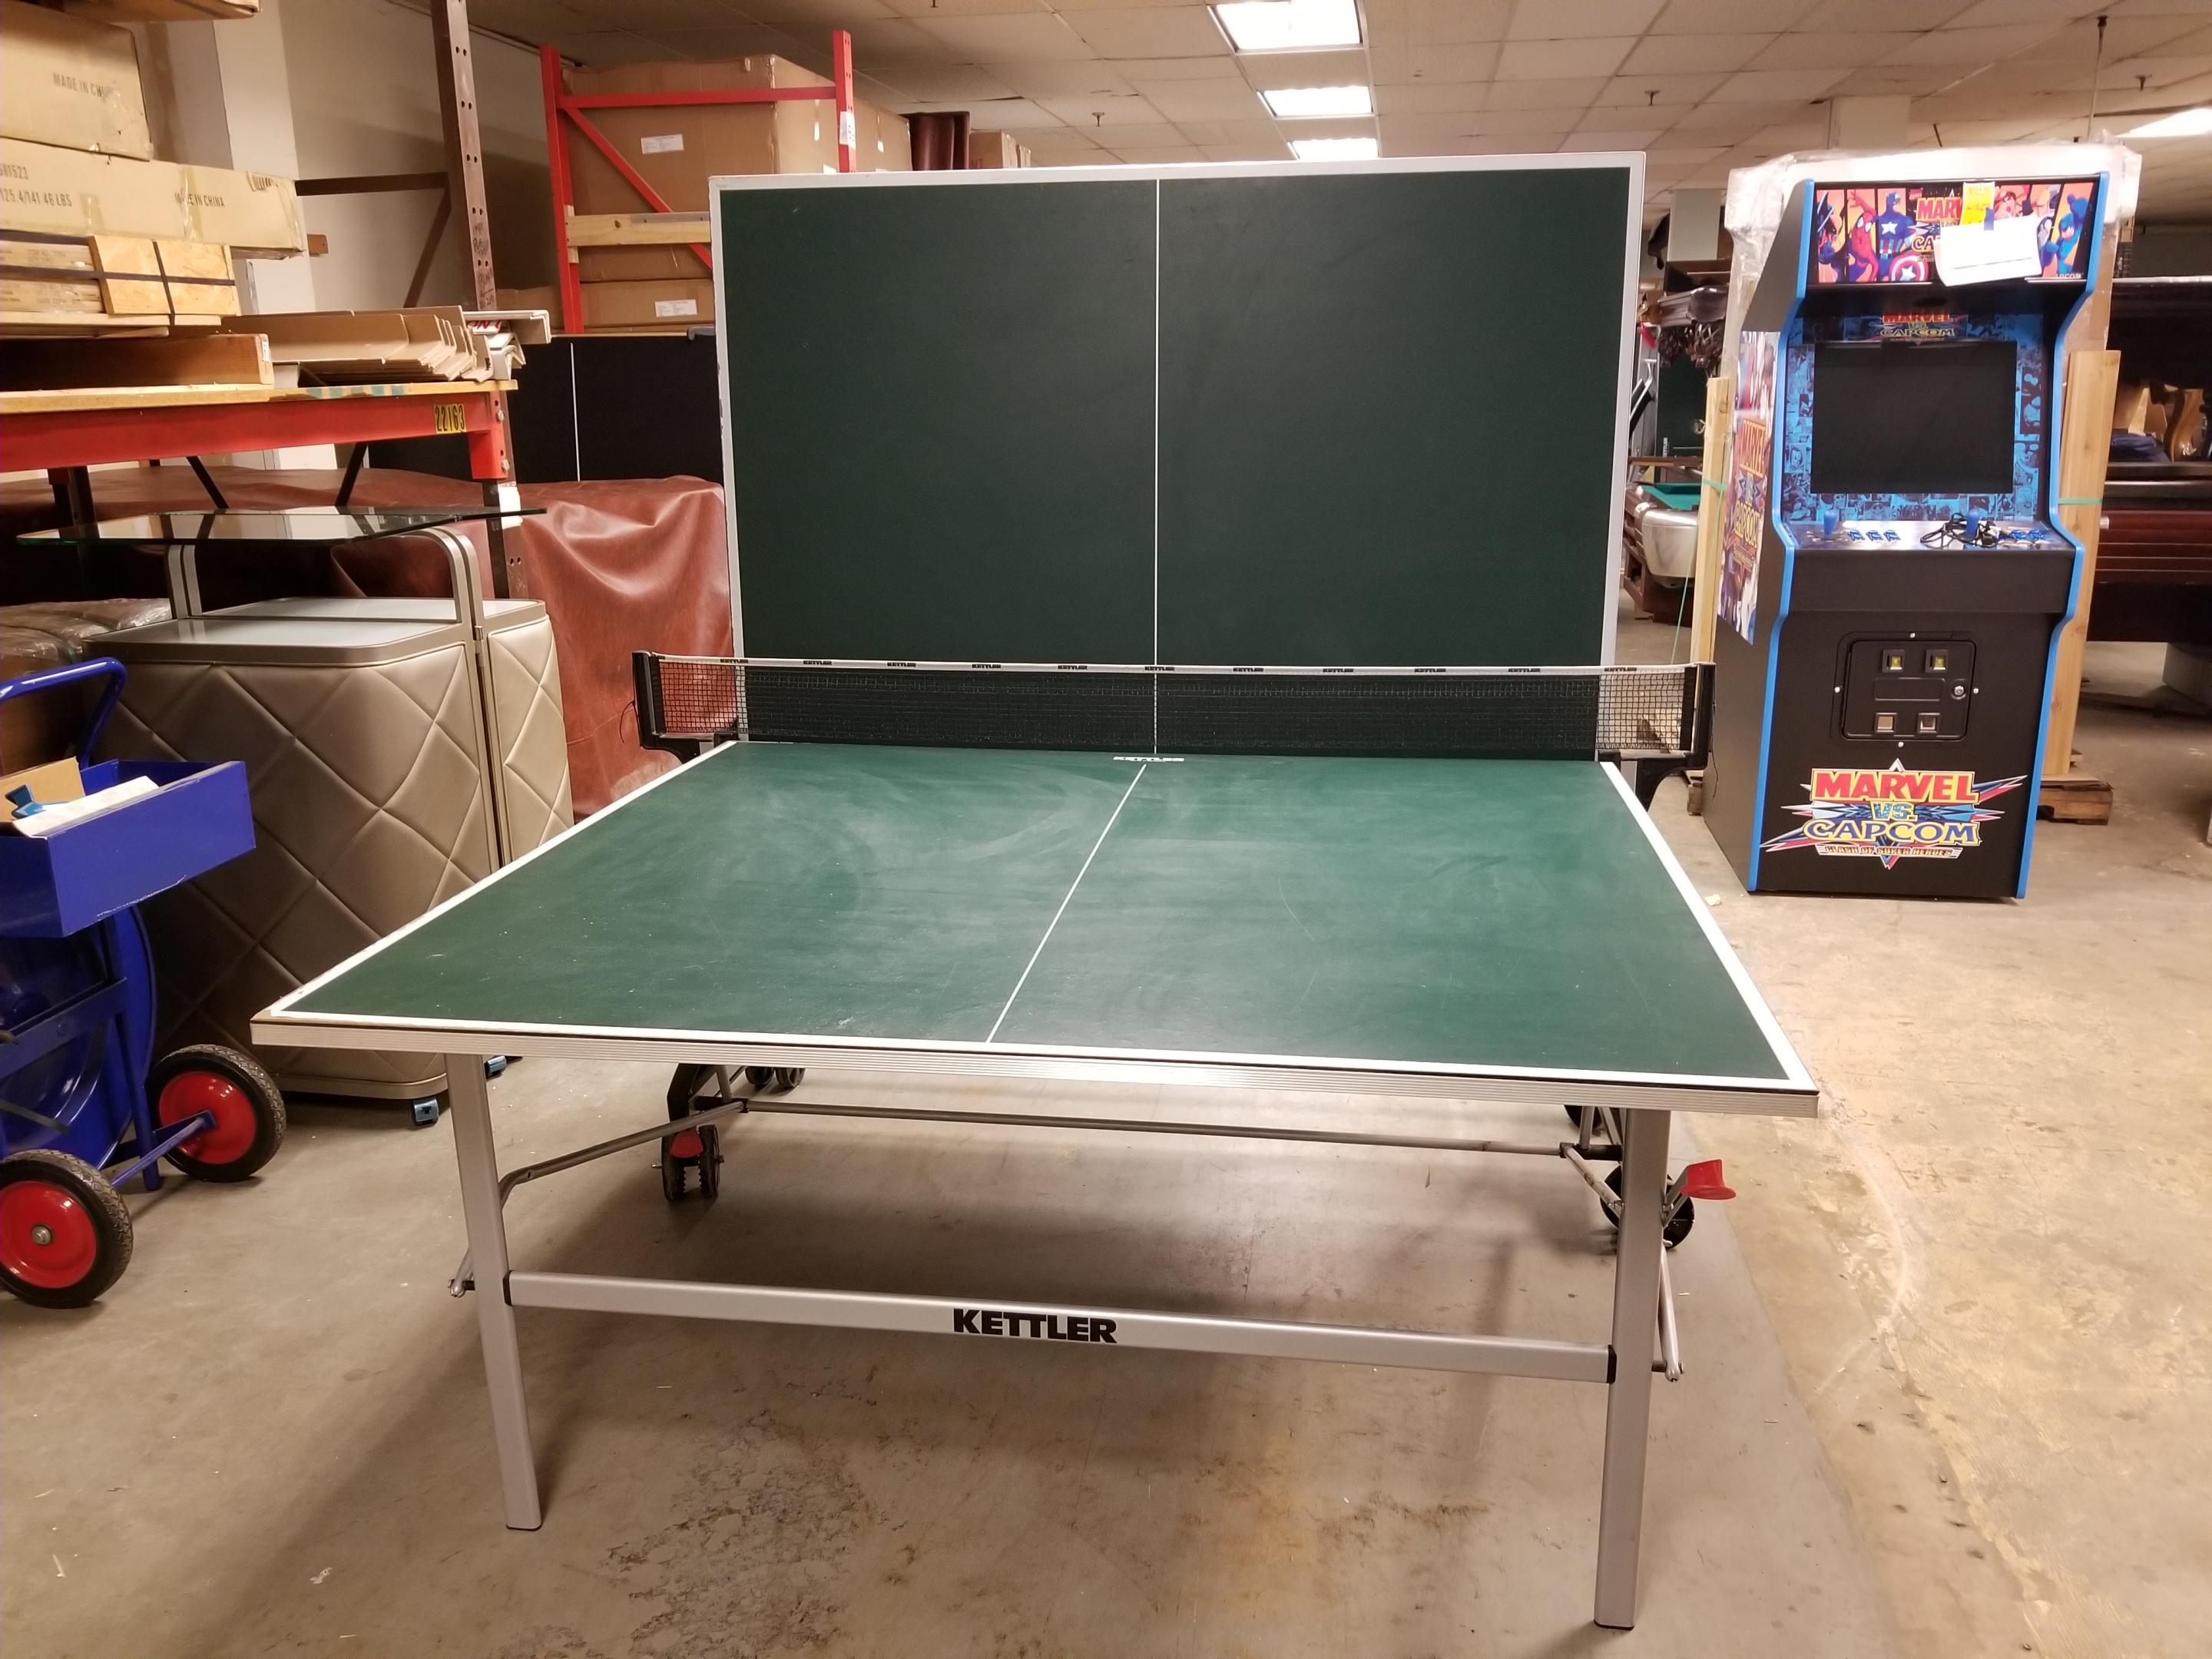 A Customer Left His $700 Kettler Ping Pong Table Outside In The Rain And  The Wood Table Top Now Has Small Bubbles In It. We Gave Him A Trade In  Allowance ...